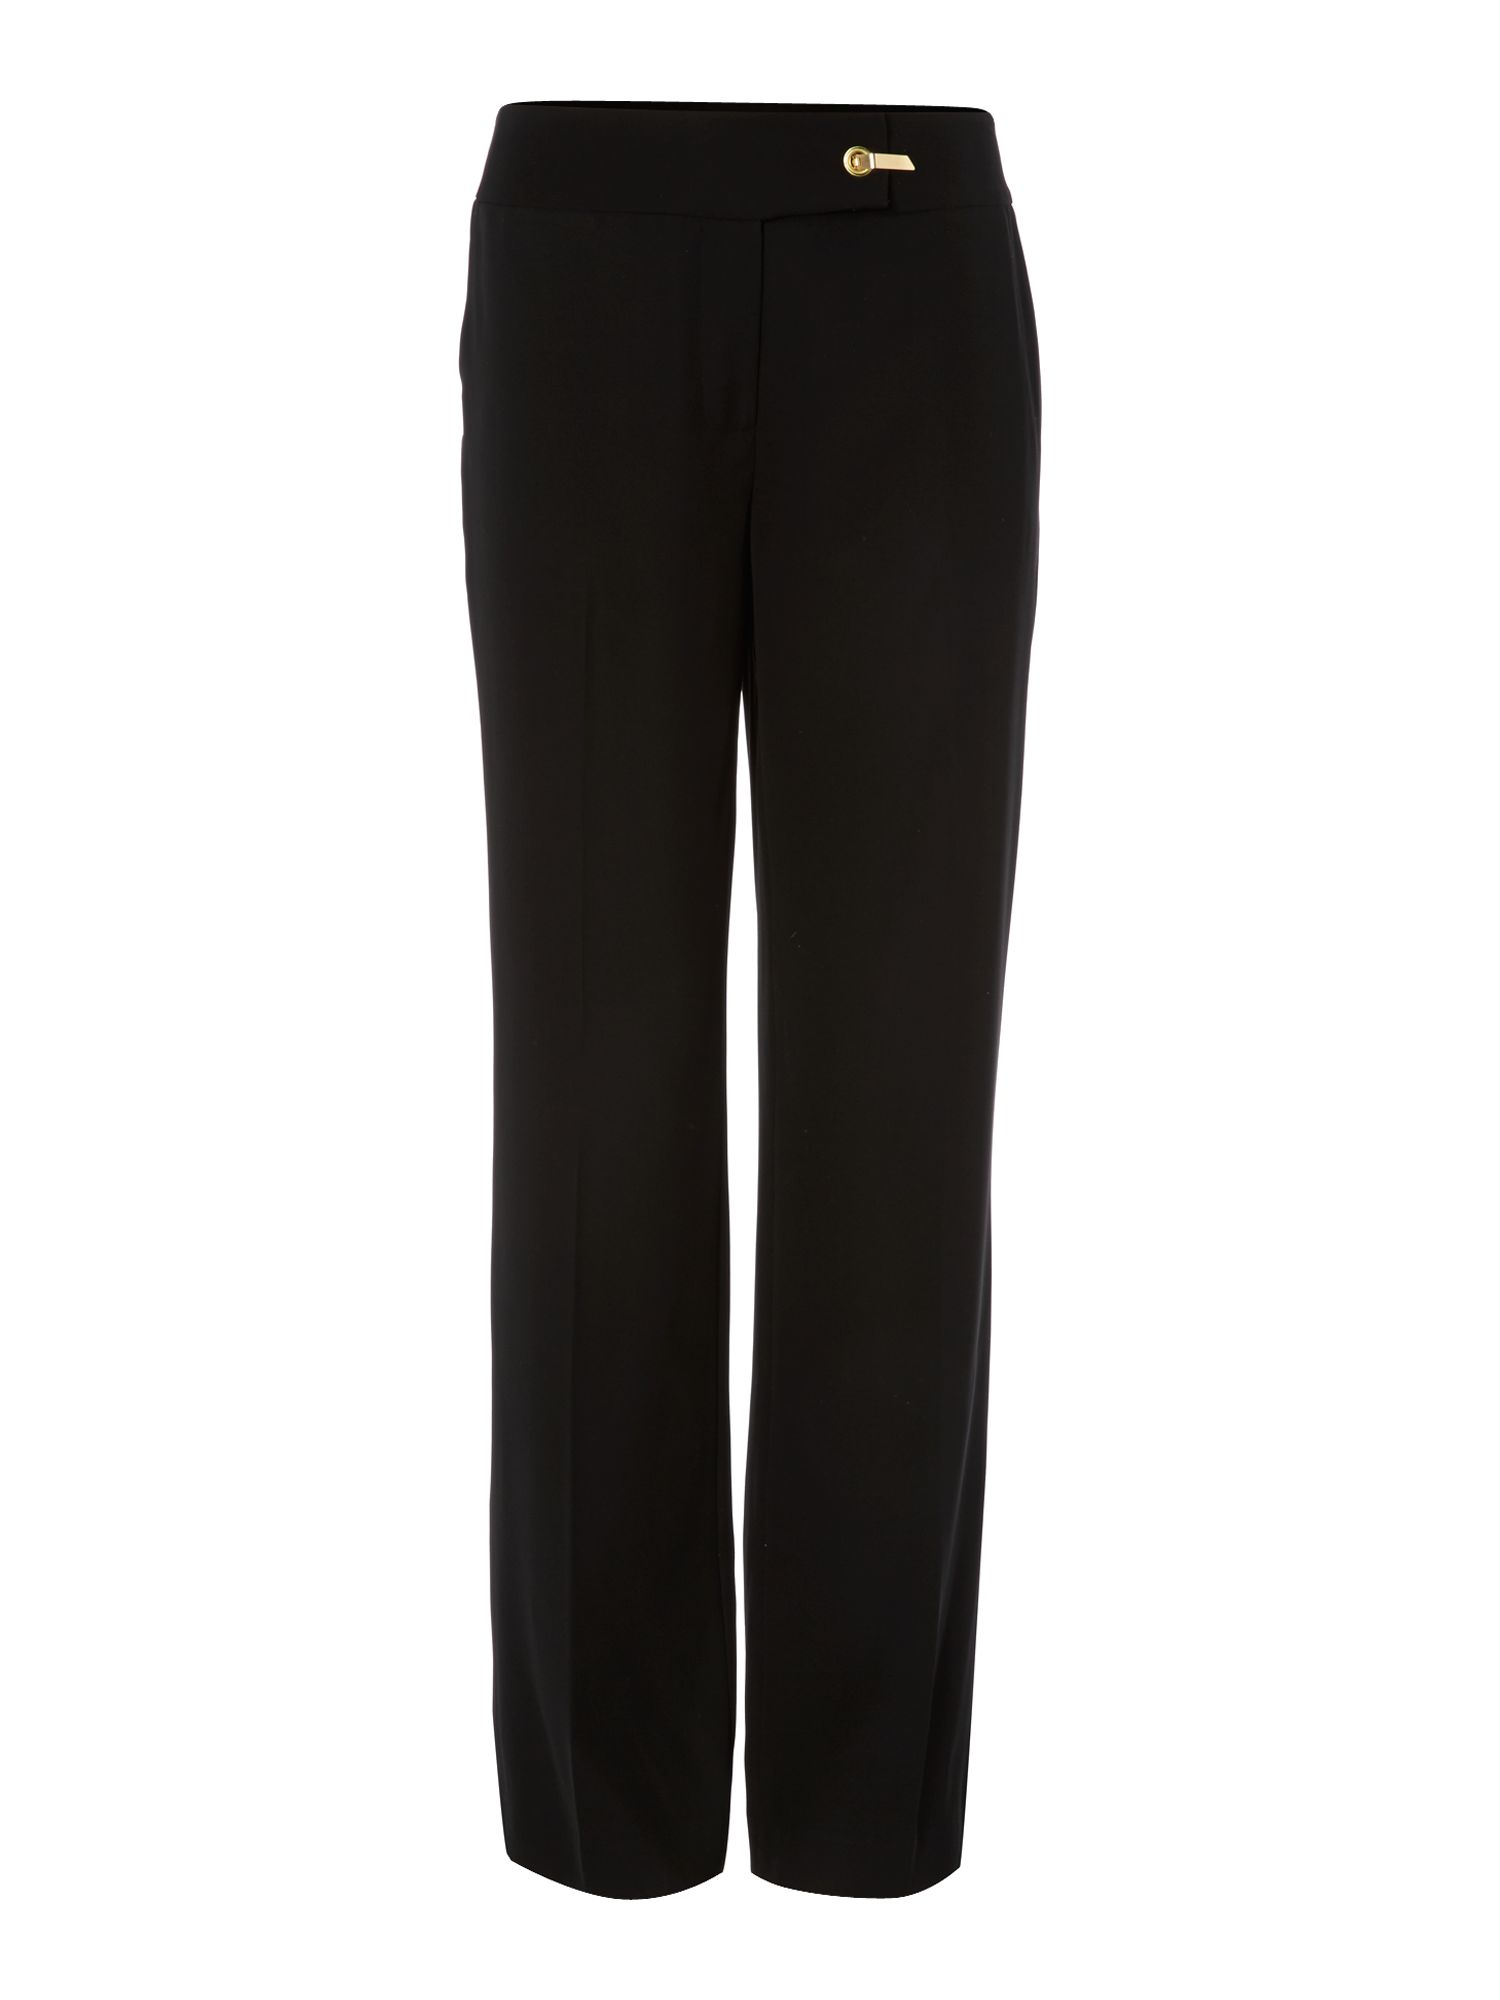 Susan buckle trim trouser- 28